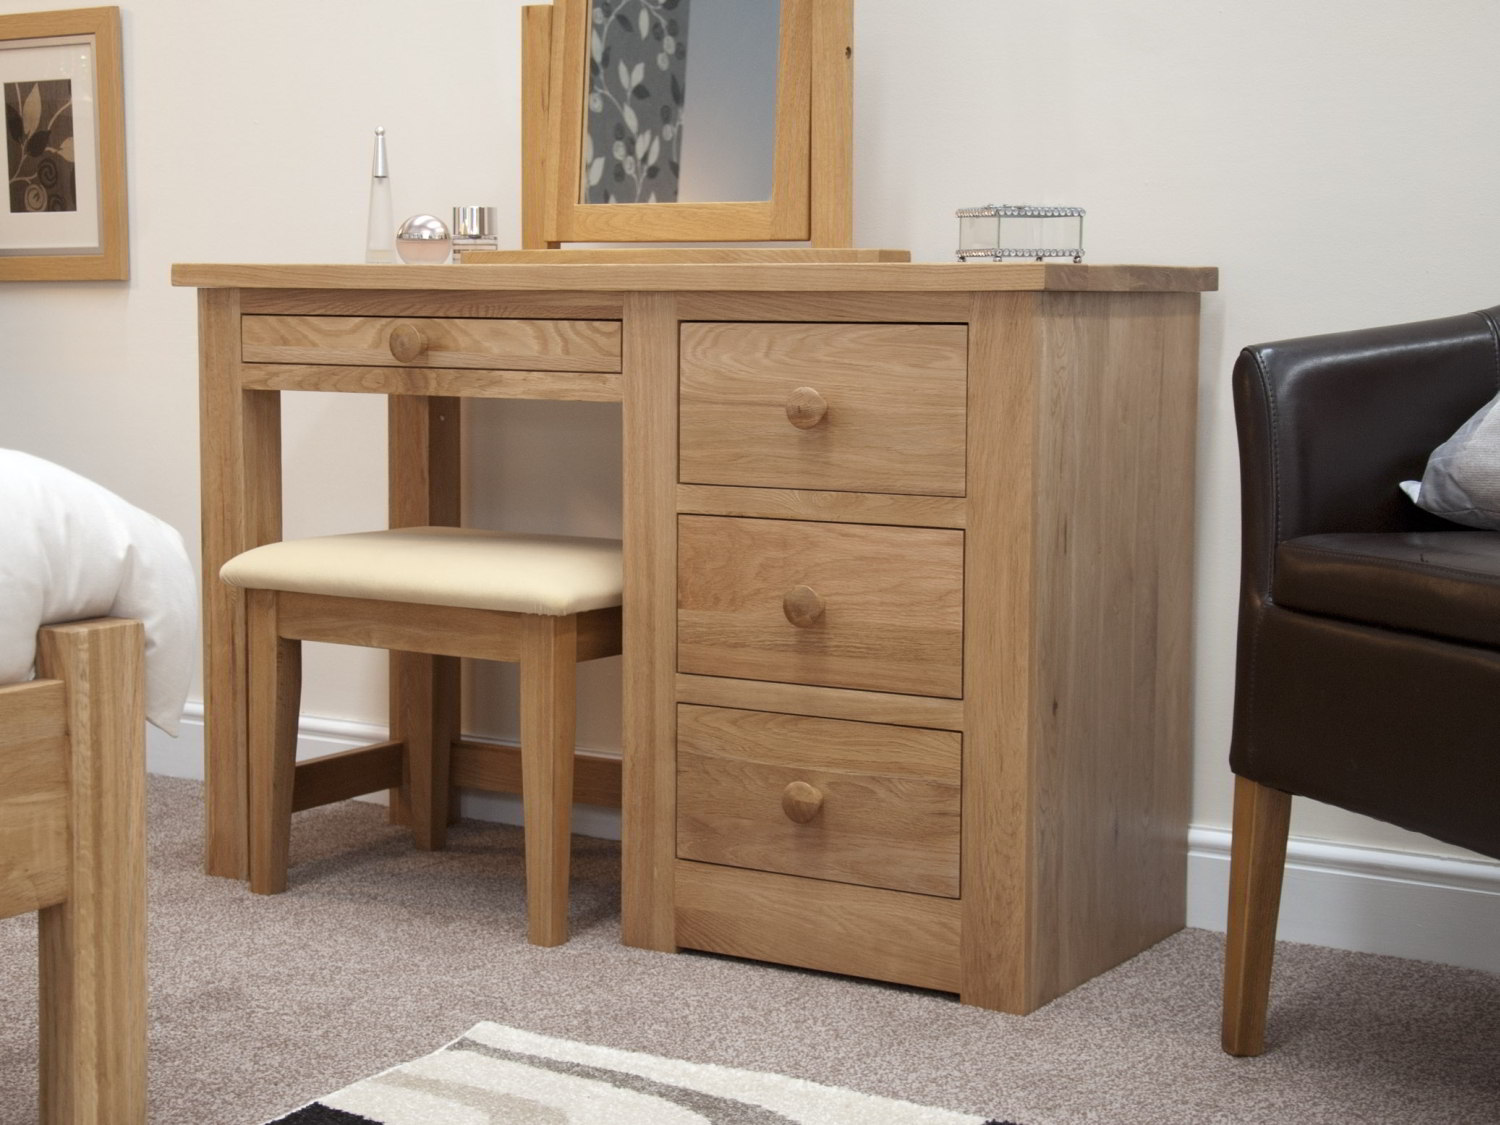 Kingston solid modern oak bedroom furniture dressing table ...